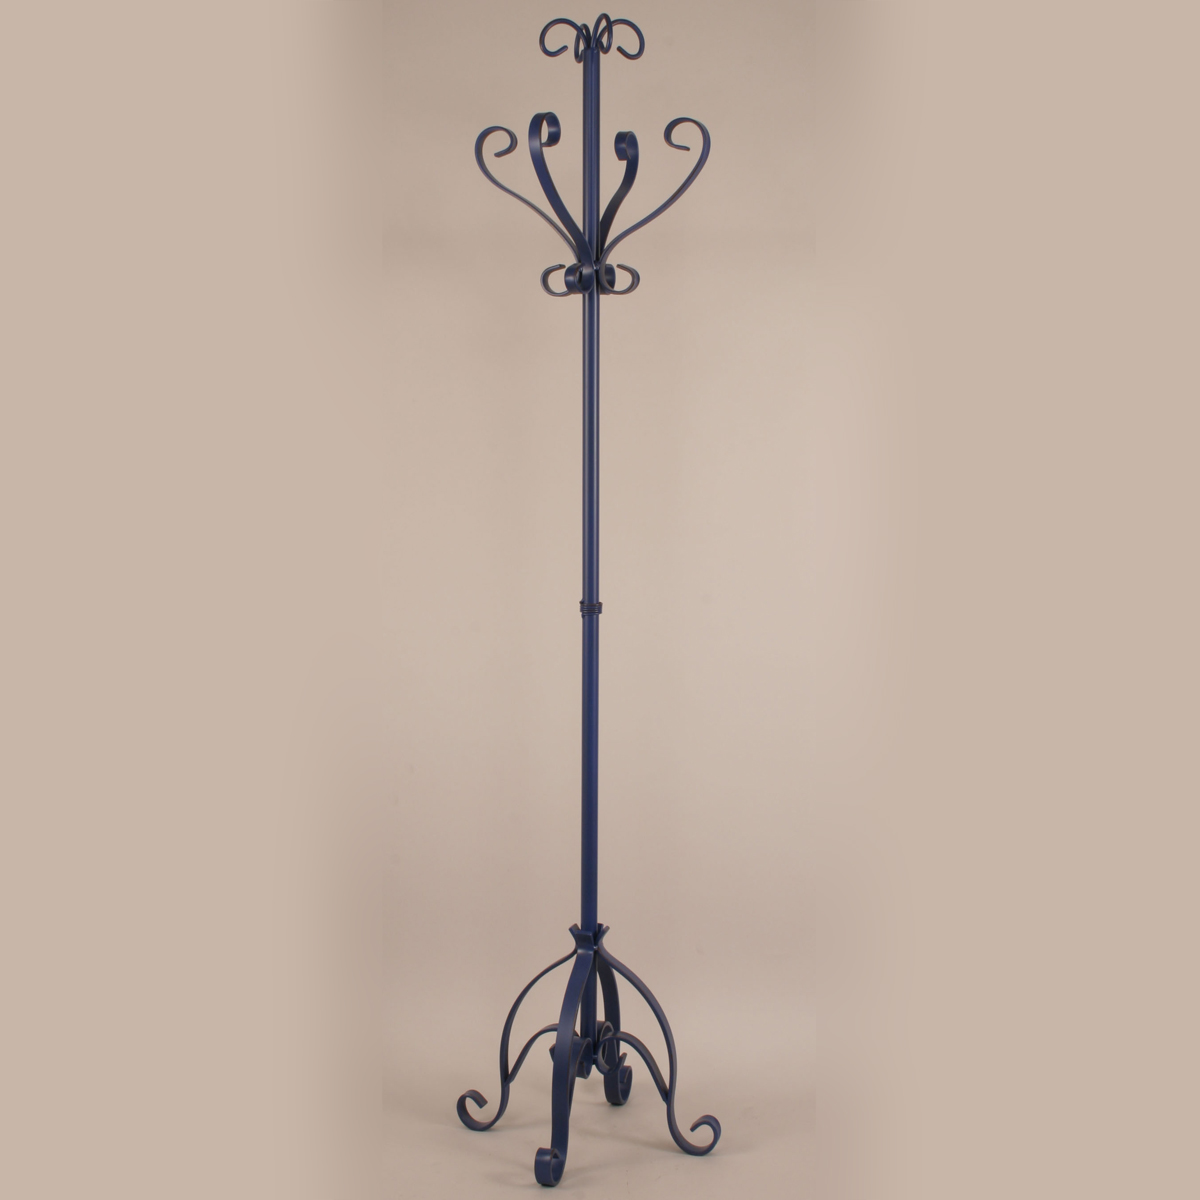 Morning Jewel Iron Pedestal Coat Rack